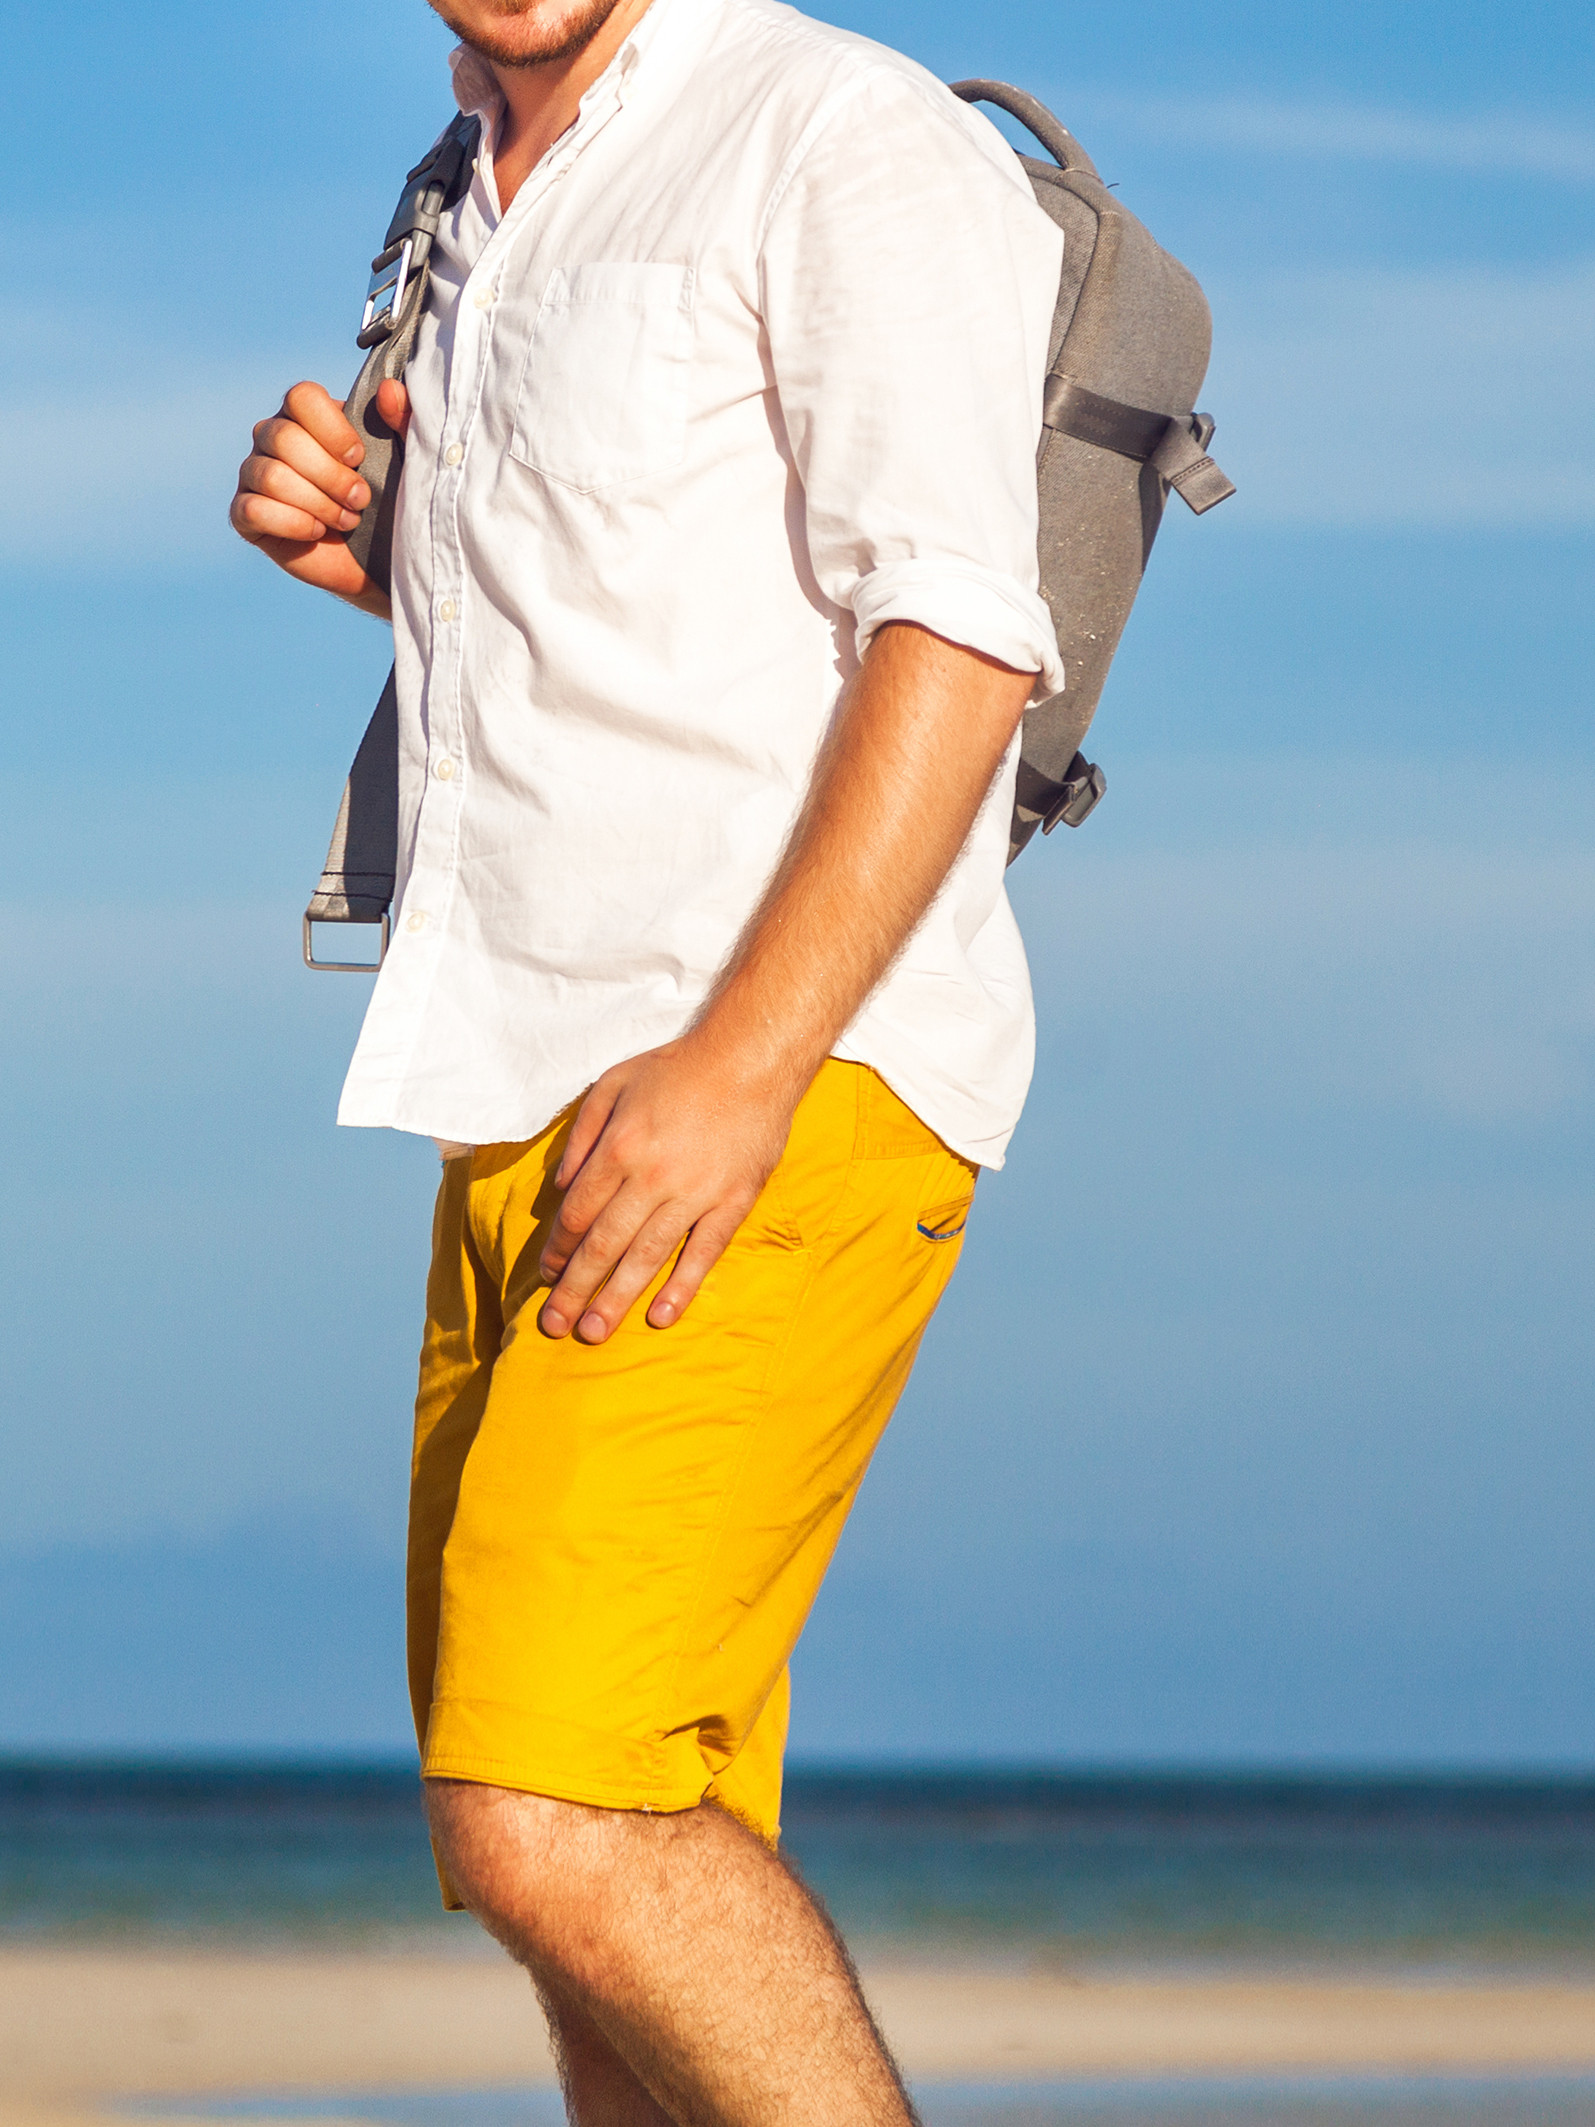 Men's outfit idea for 2021 with linen shirt, swimwear, white sneakers. Suitable for summer.